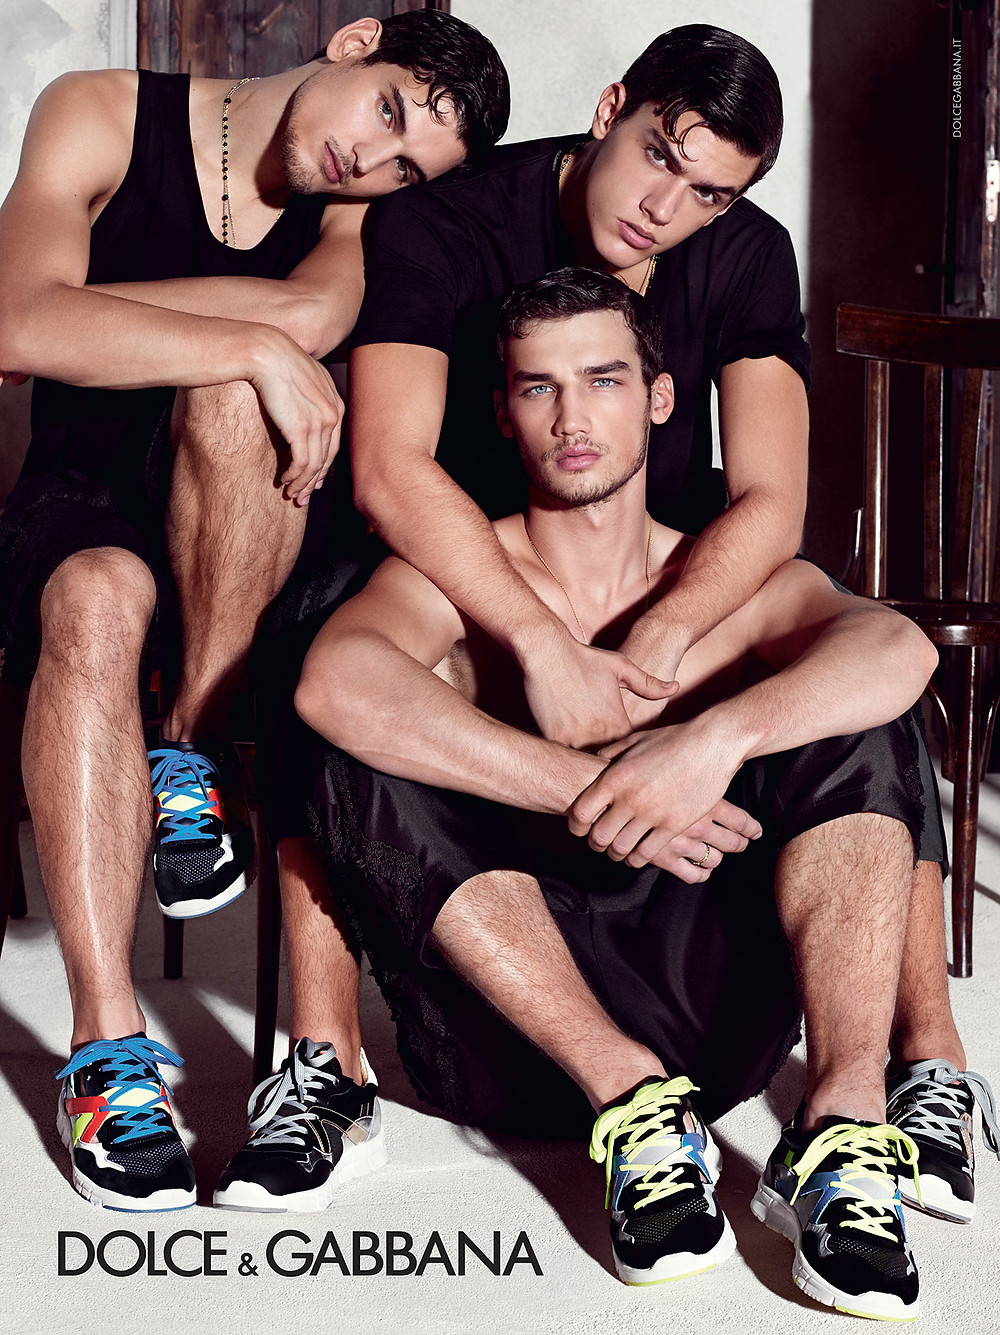 dolce-and-gabbana-summer-2015-men-advertising-campaign-08-zoom